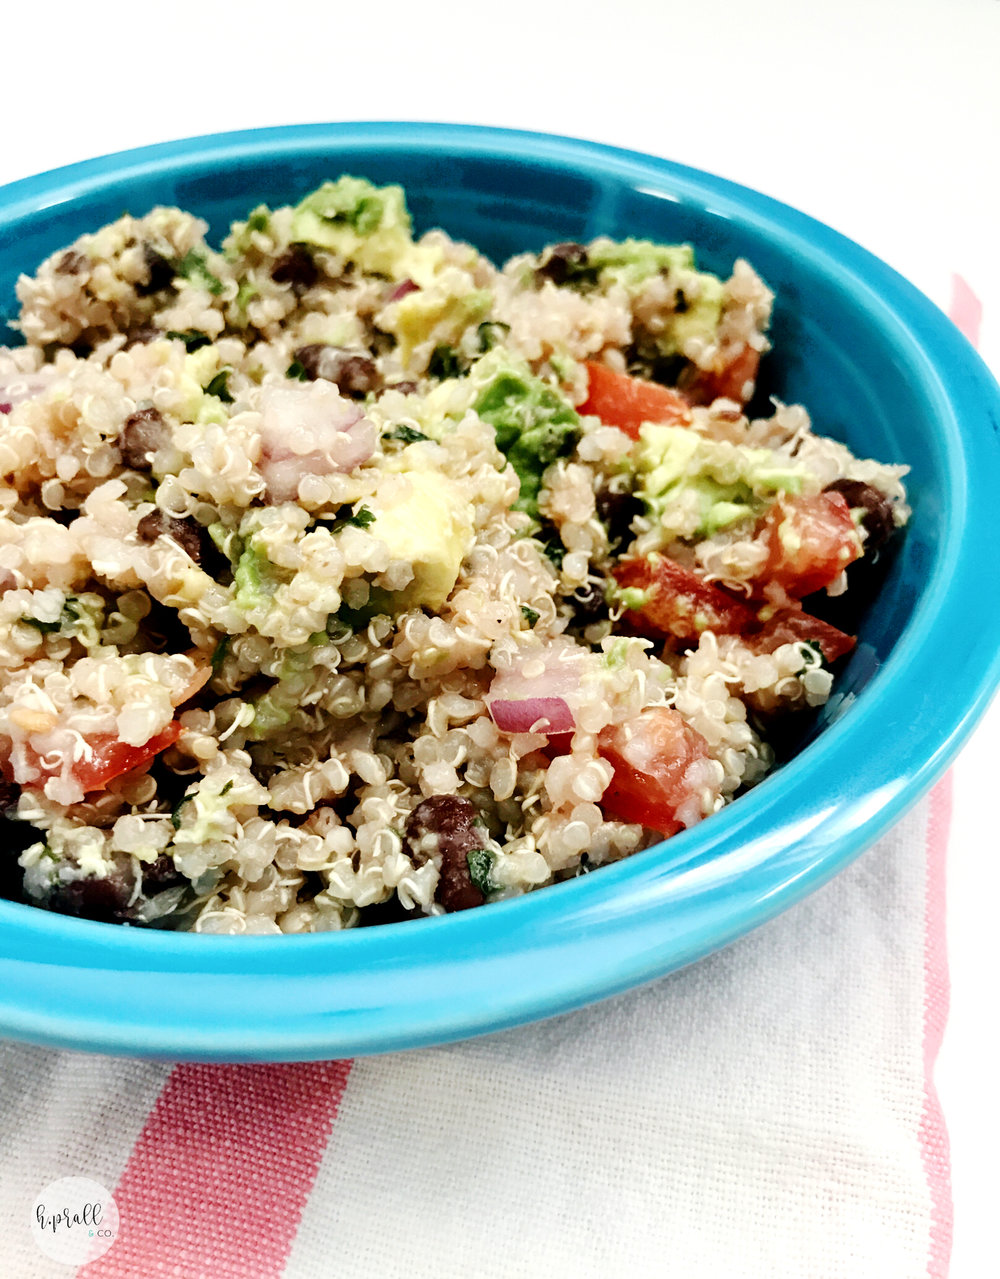 Bowl full of Southwest Quinoa Salad from H.Prall & Co. Interior Decorating. | hprallandco.com Interior Decorating in Des Moines, IA